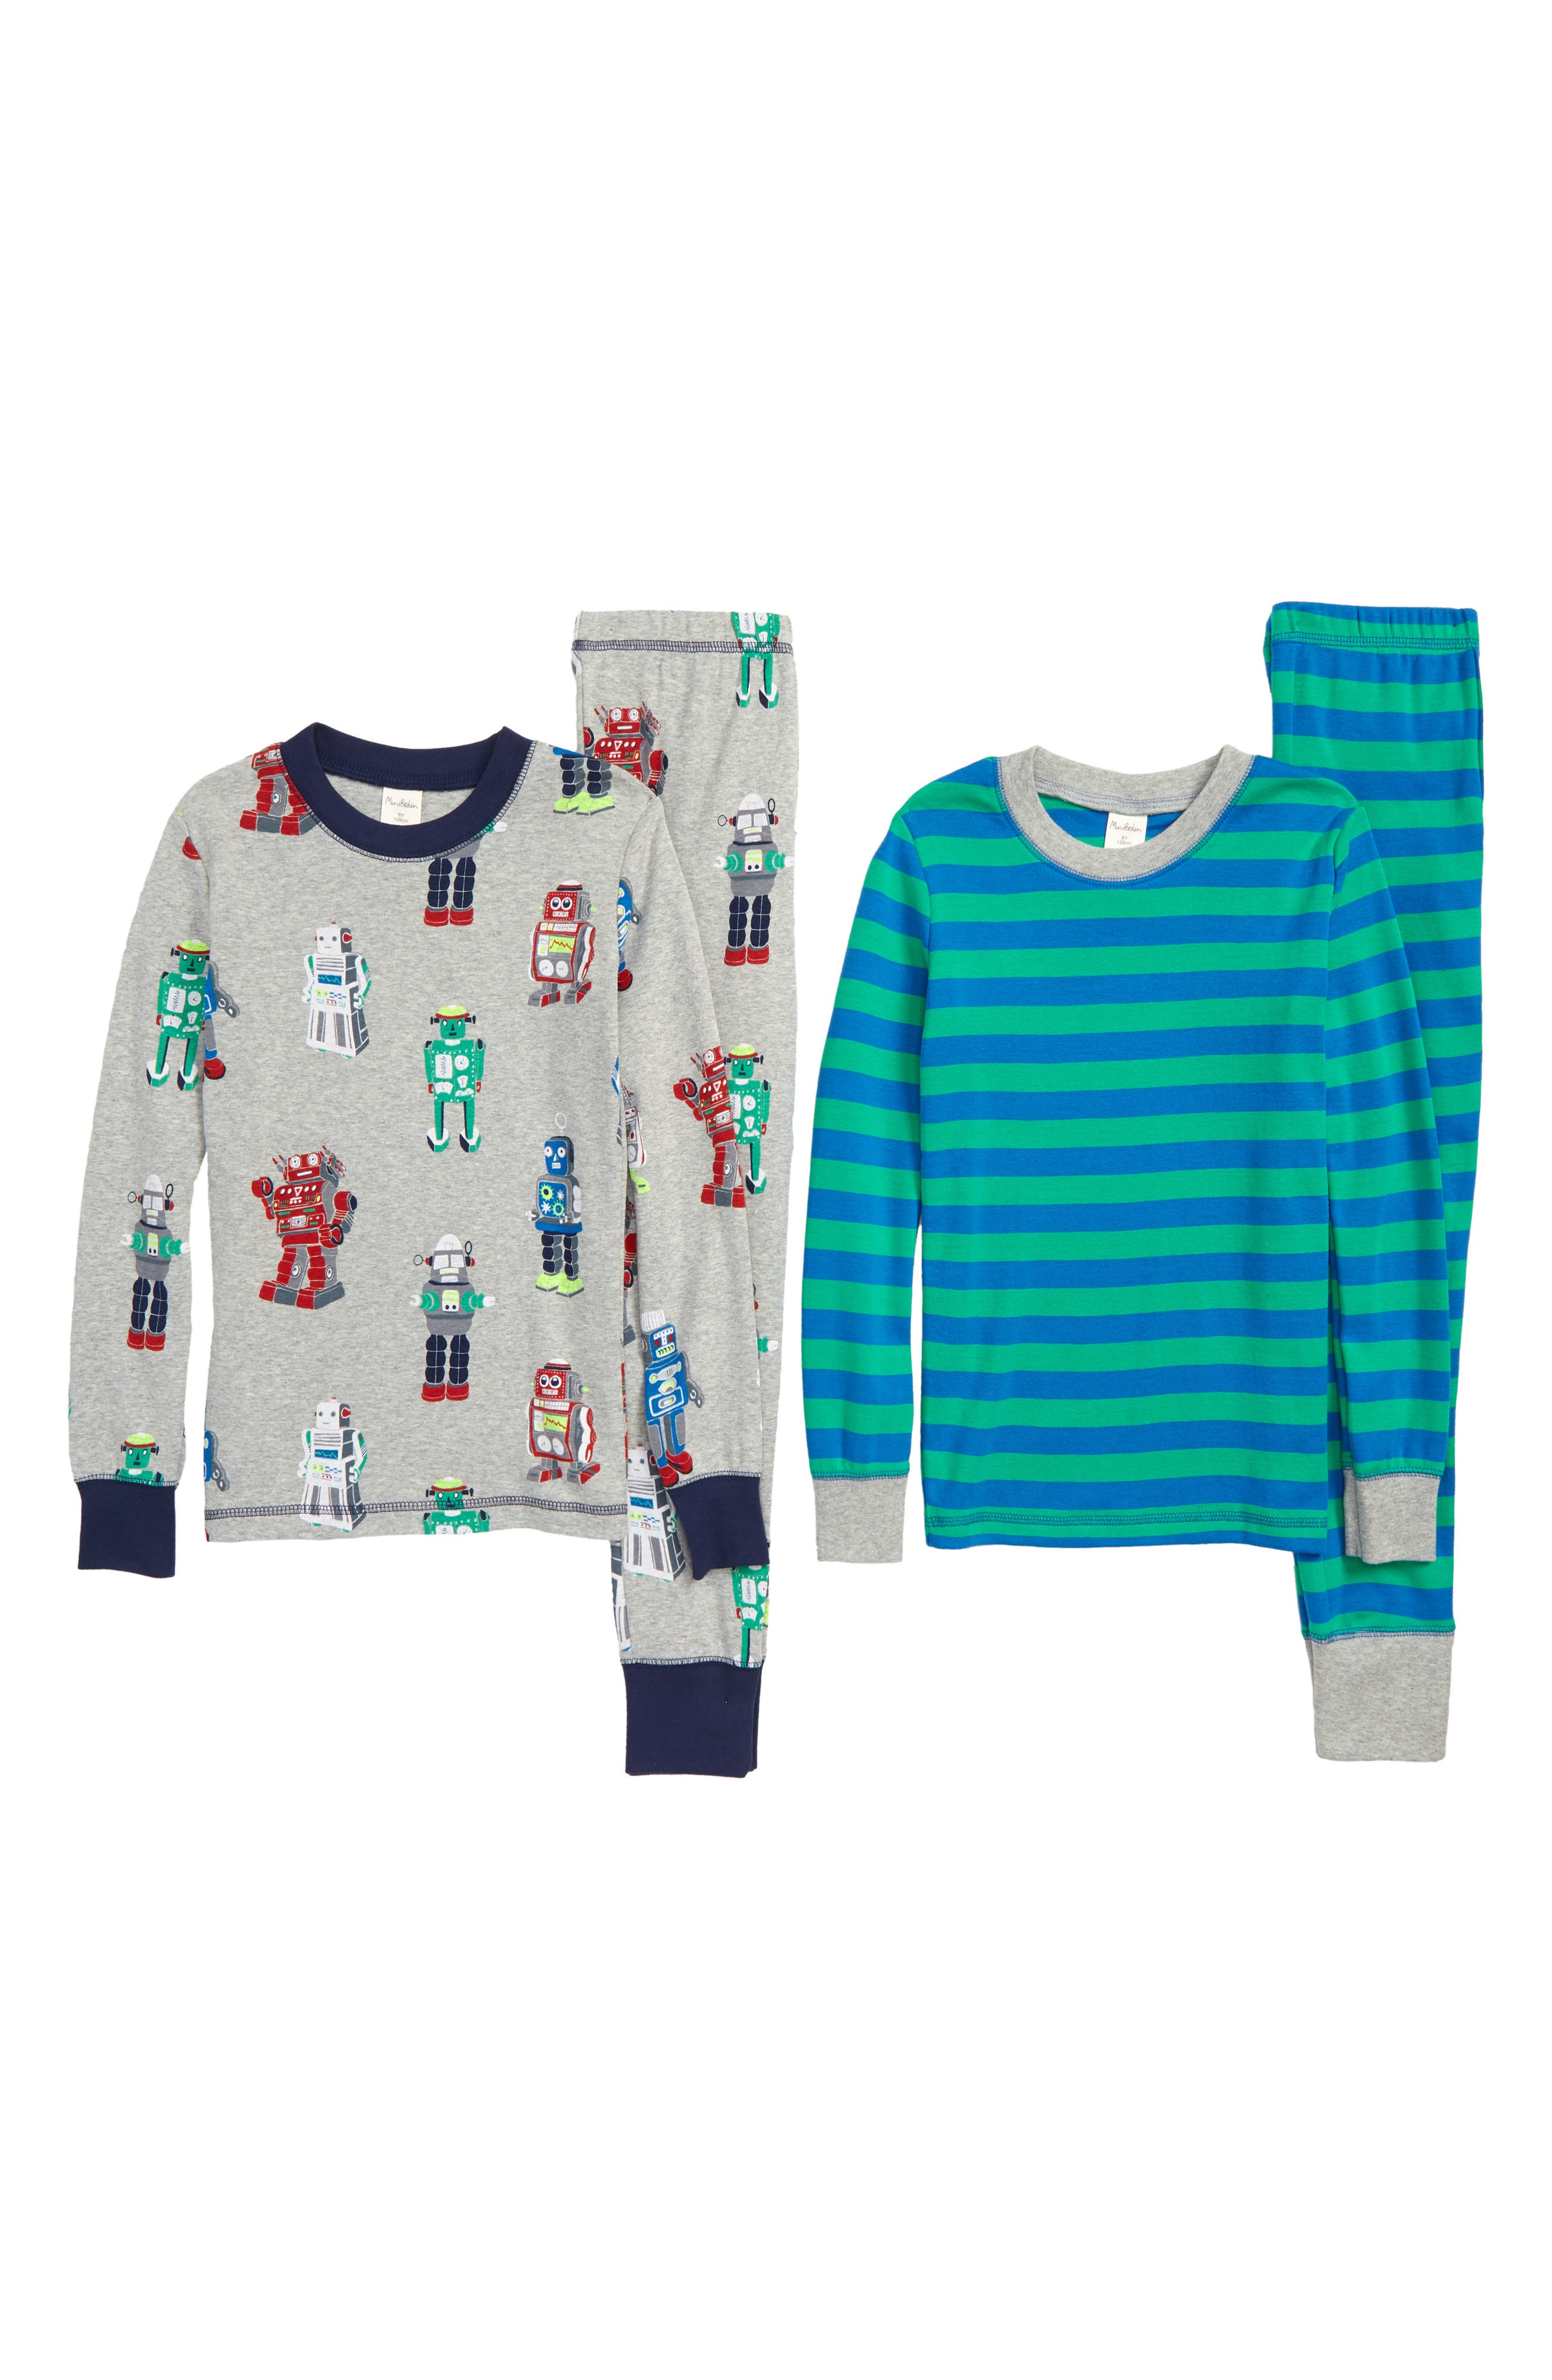 Cosy 2-Pack Fitted Two-Piece Pajamas,                             Main thumbnail 1, color,                             MLT GREY MARL RETRO ROBOTS